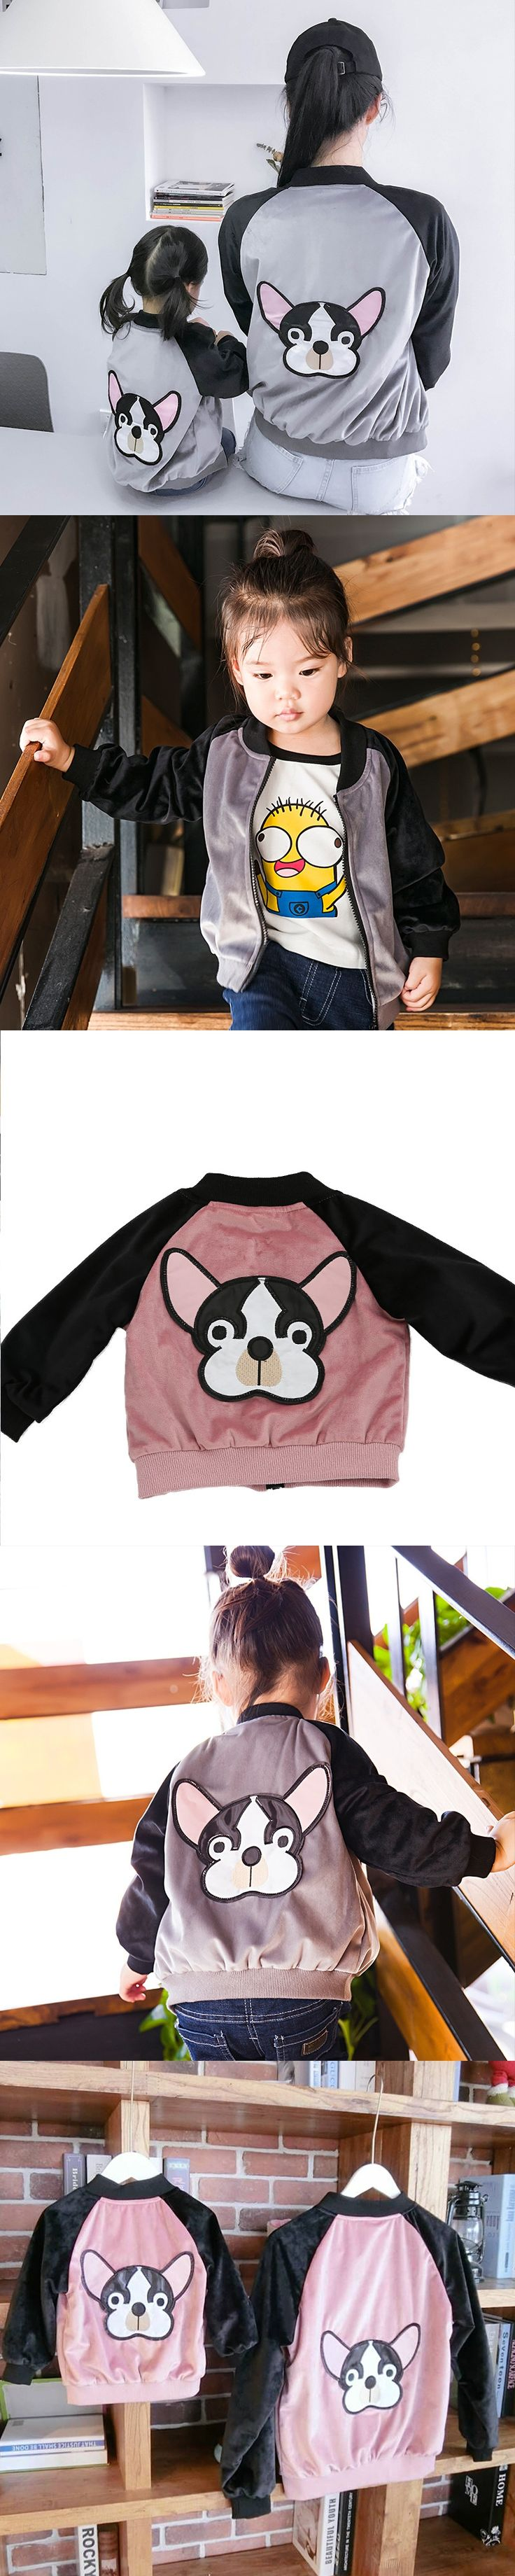 Spring Autumn Coats Matching Family Clothing Embroidery Dog Jacket Mommy Kids Coats Girl Boy Outerwear Fashion Family Clothing